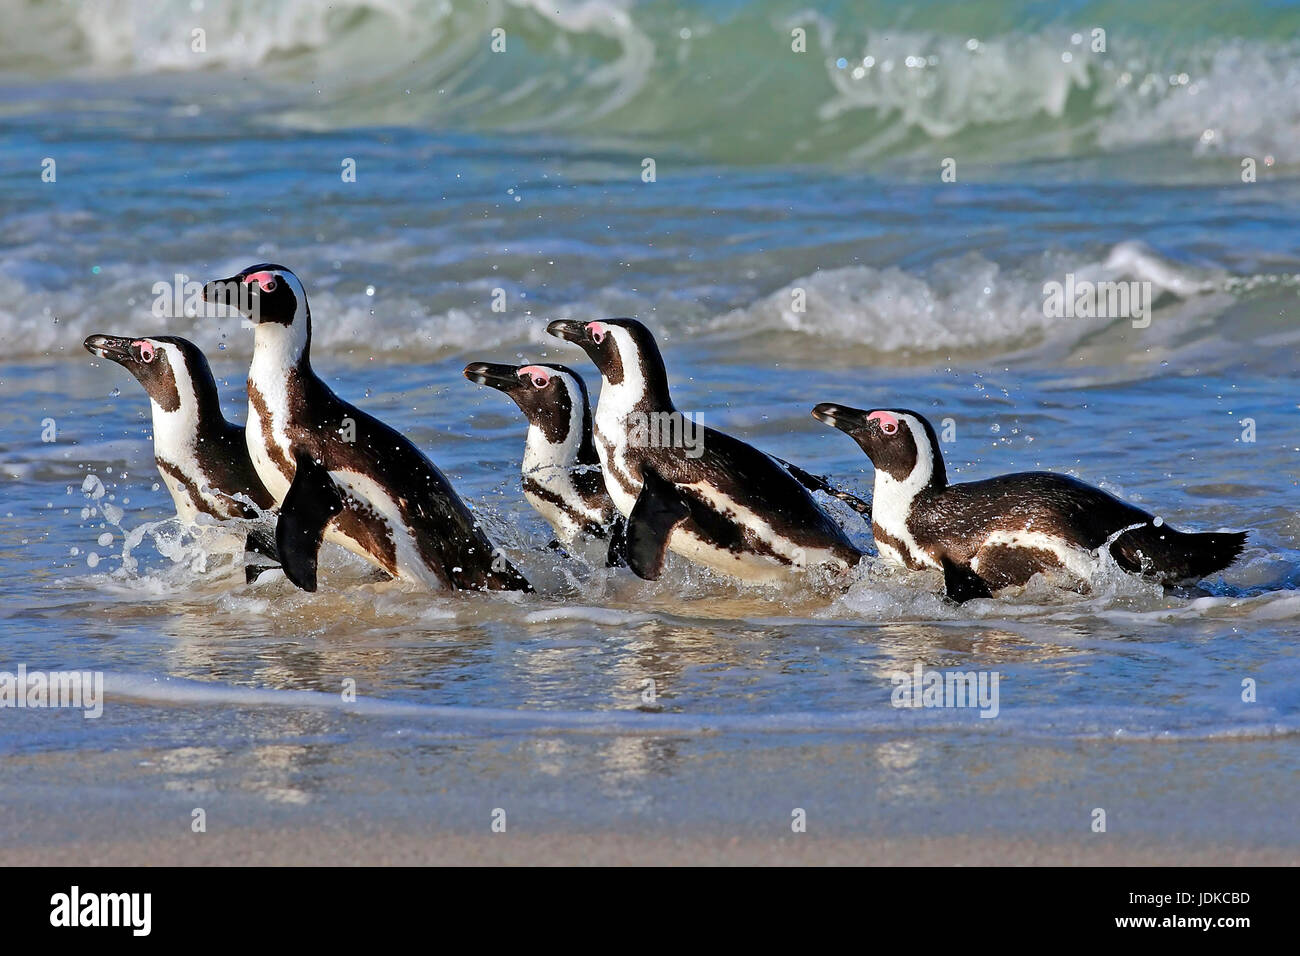 Glasses penguins on the beach - Africa, Brillenpinguine am Strand - Afrika Stock Photo